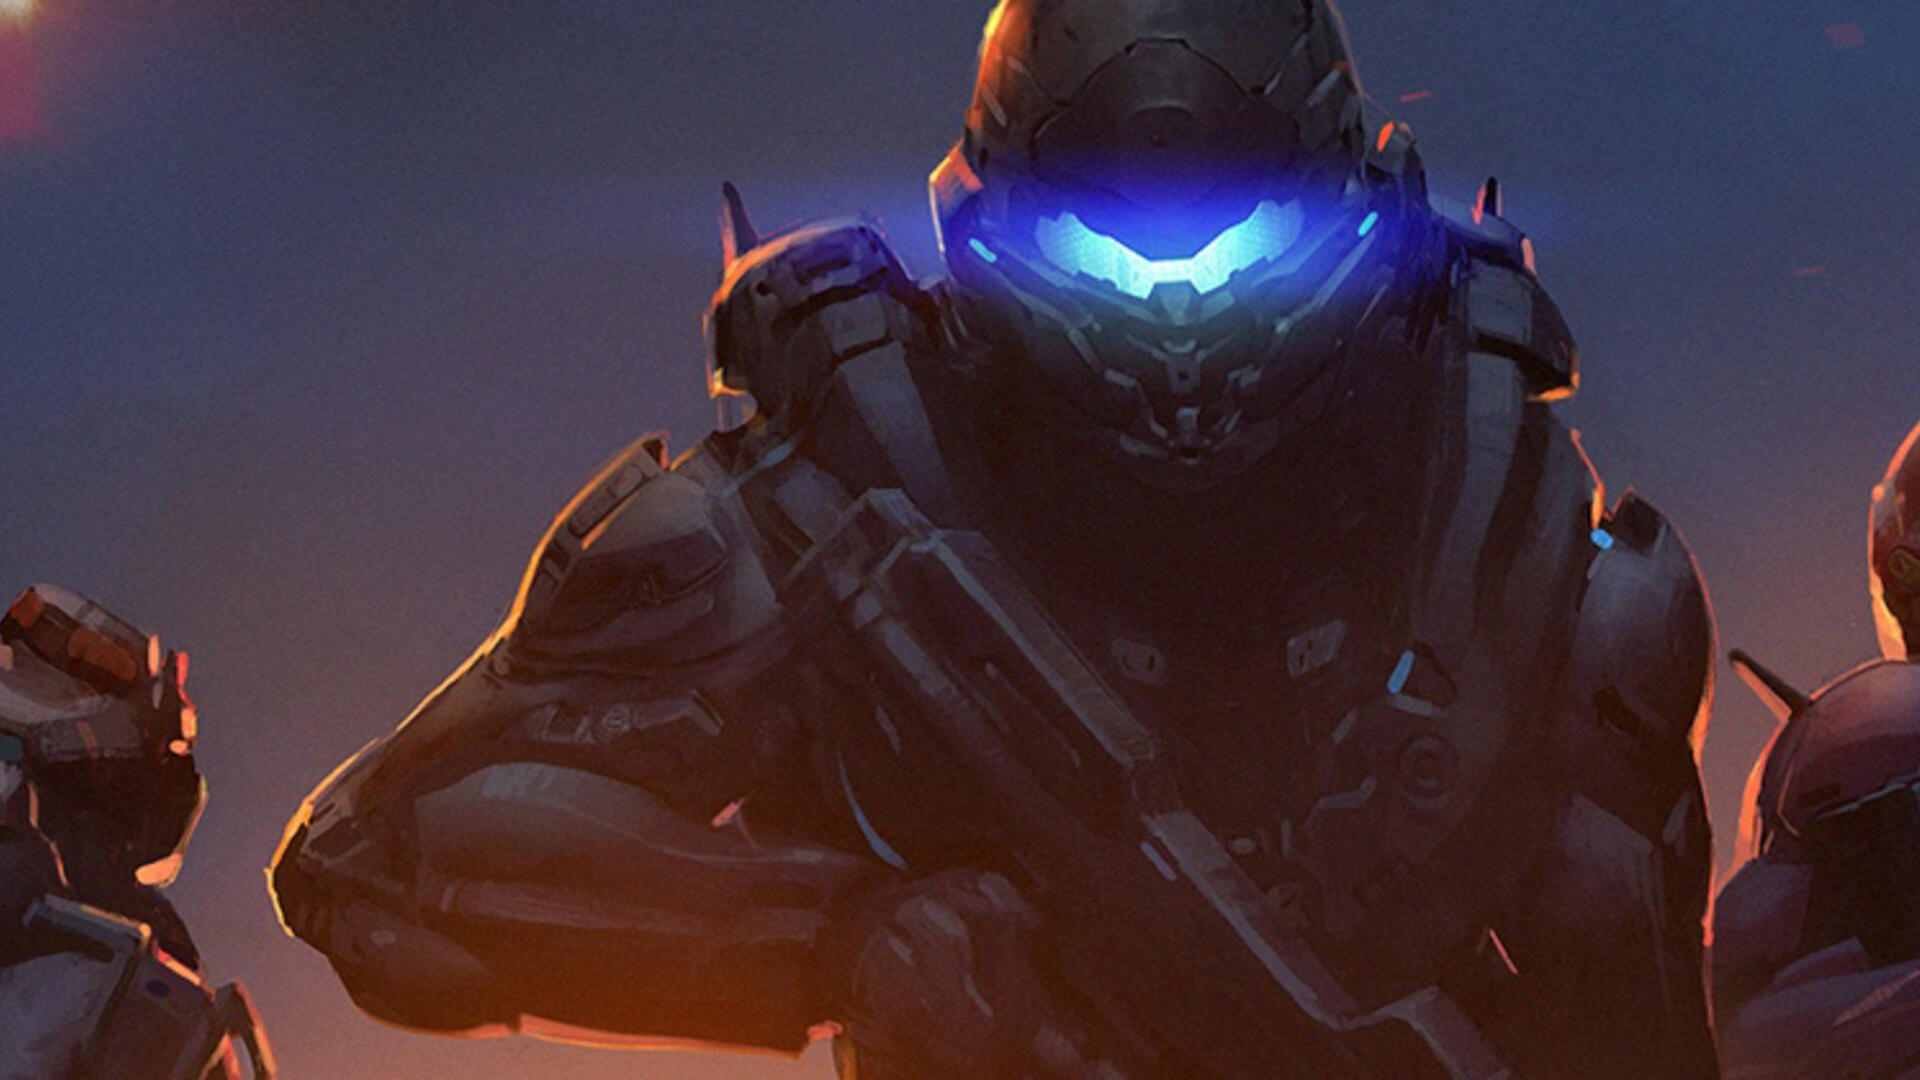 Halo 5: Guardians - All Intel Locations Guide   USgamer